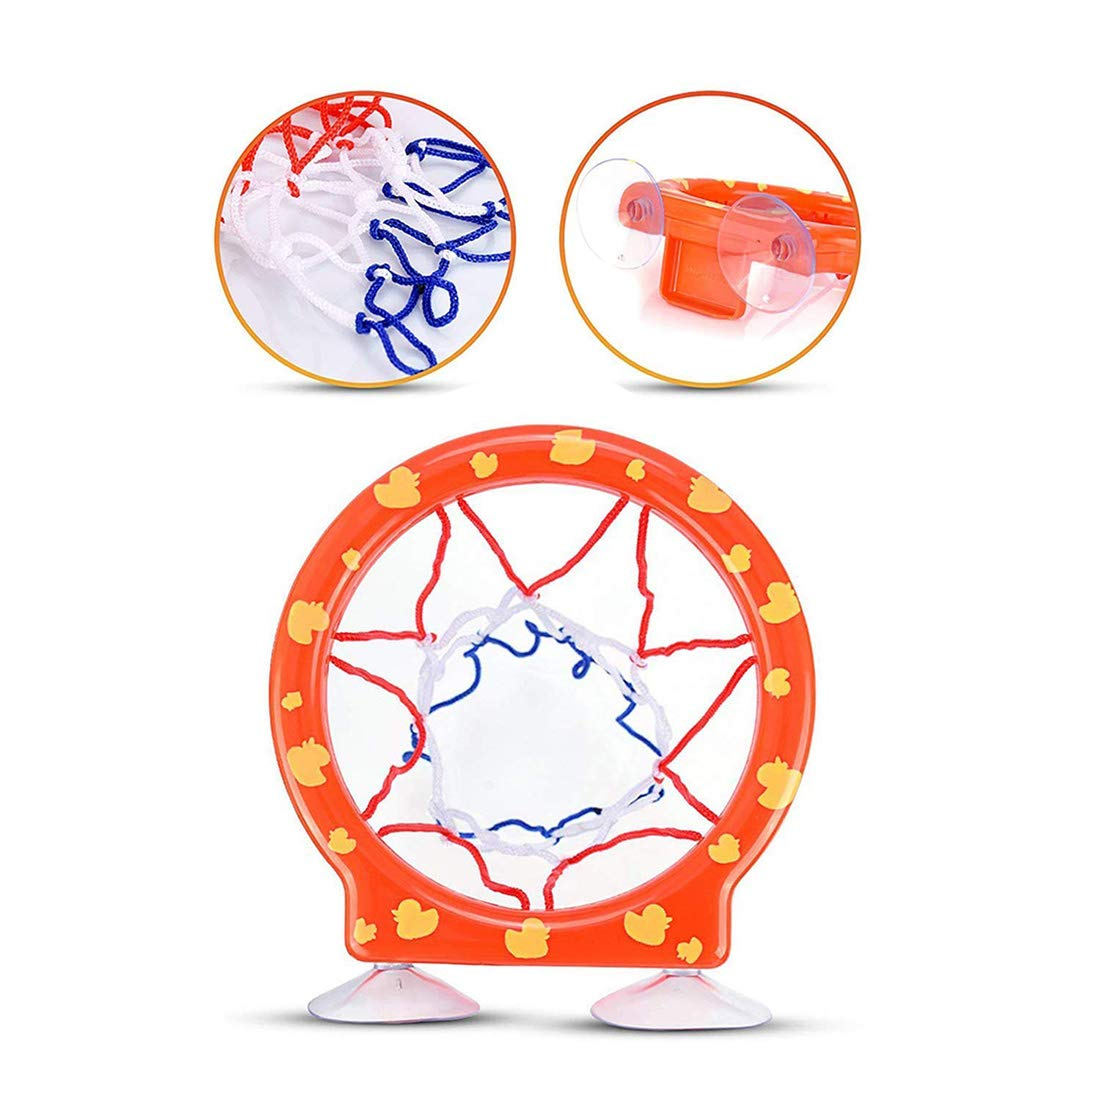 Max Fun Basketball Hoop /& Balls Playset Bath Toys for Kids 3 Balls Included Siauction Suctions Cups Install